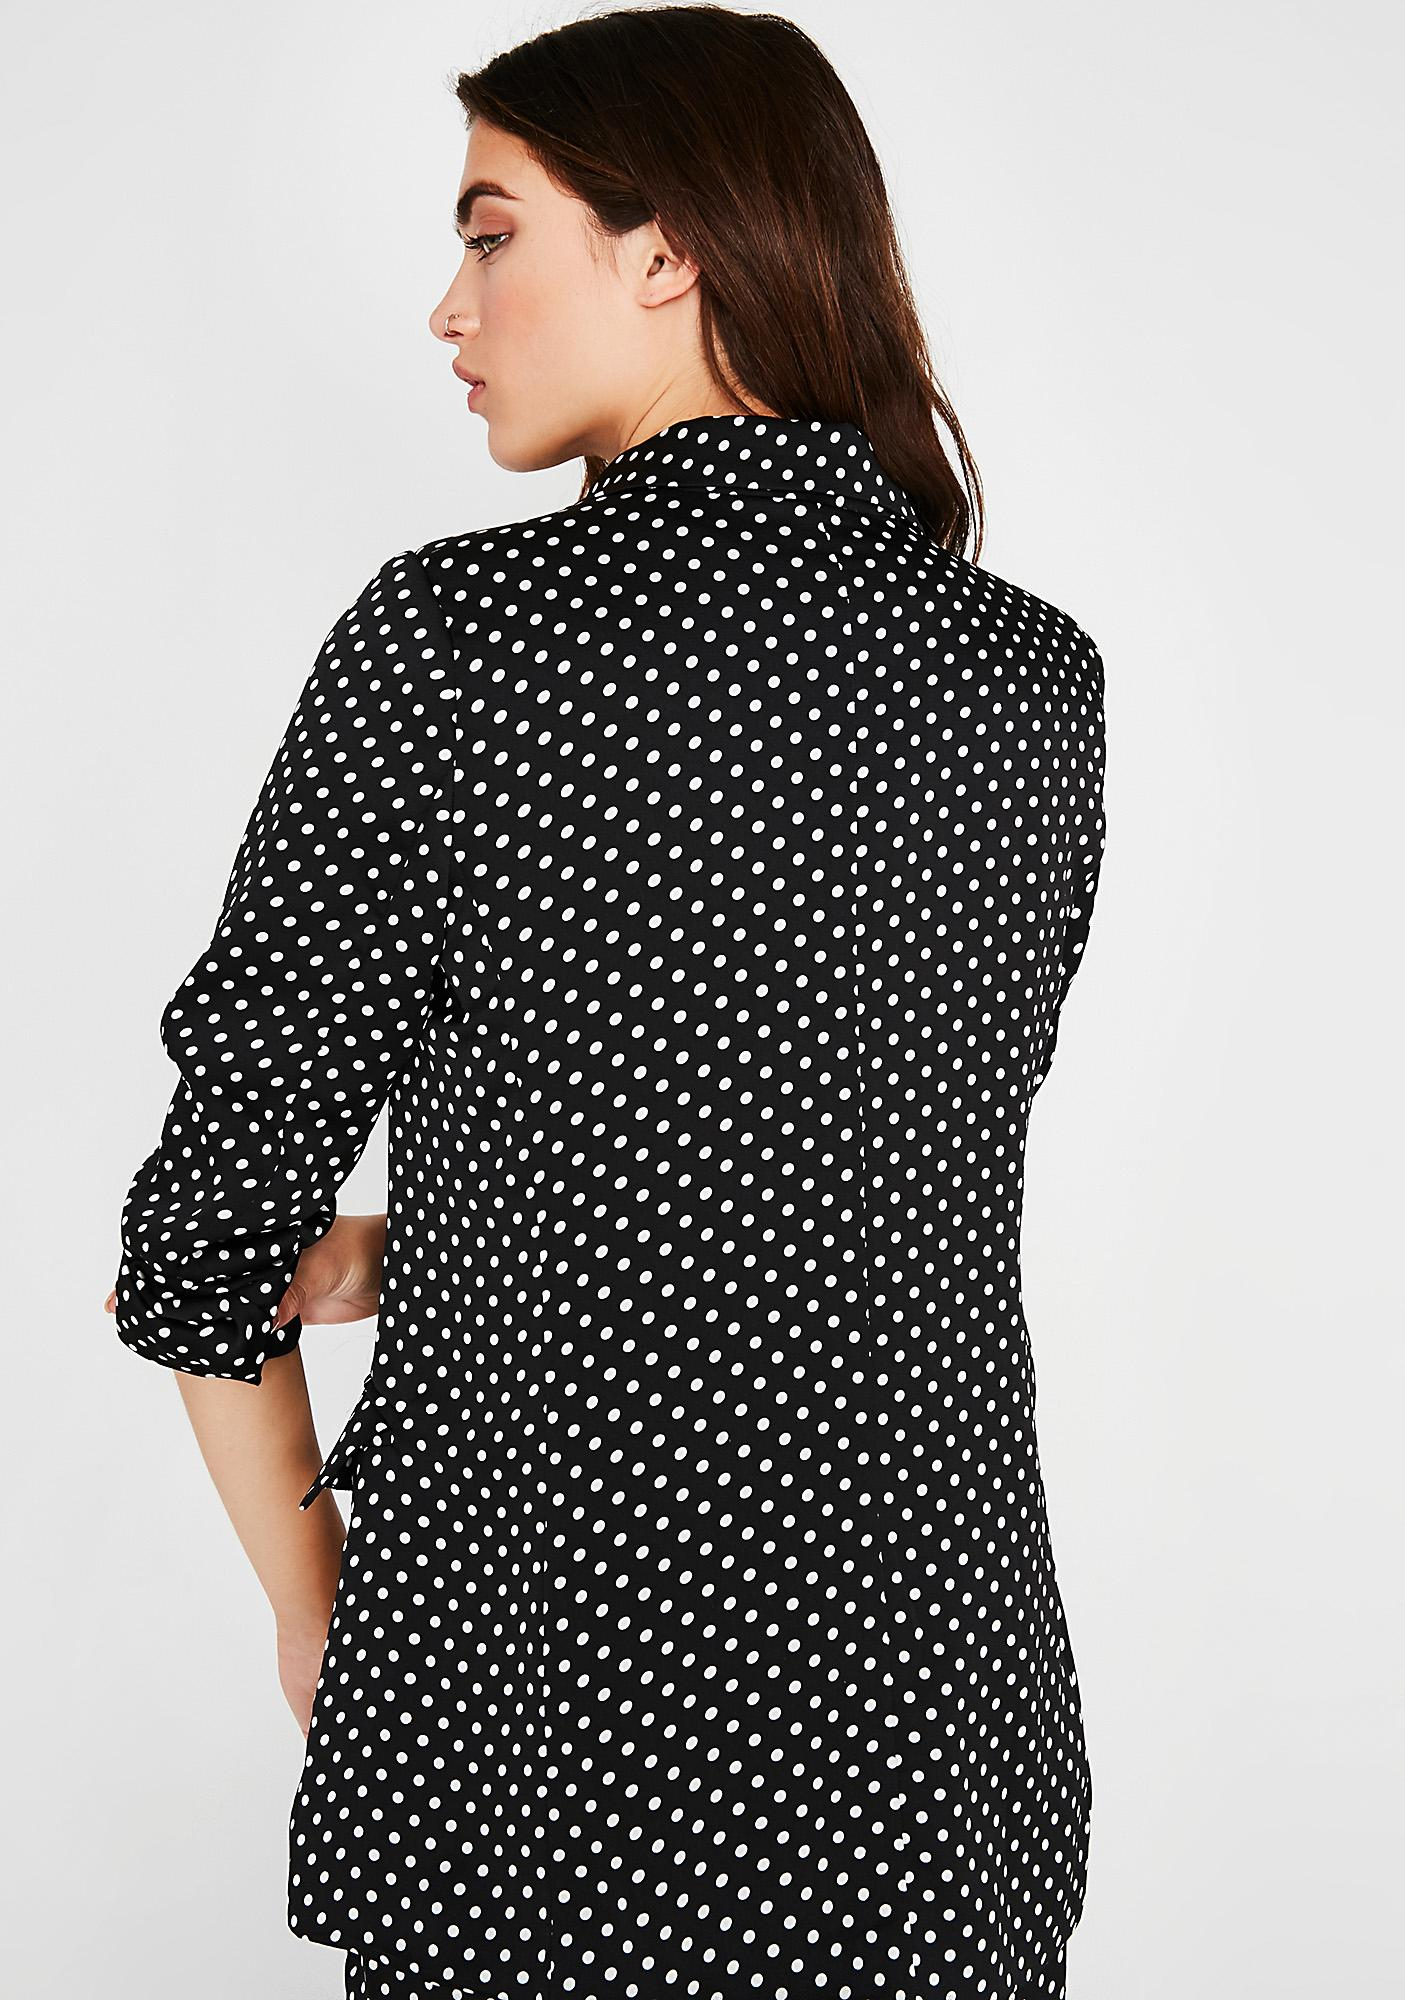 Polka Dot Boss Lady Blazer